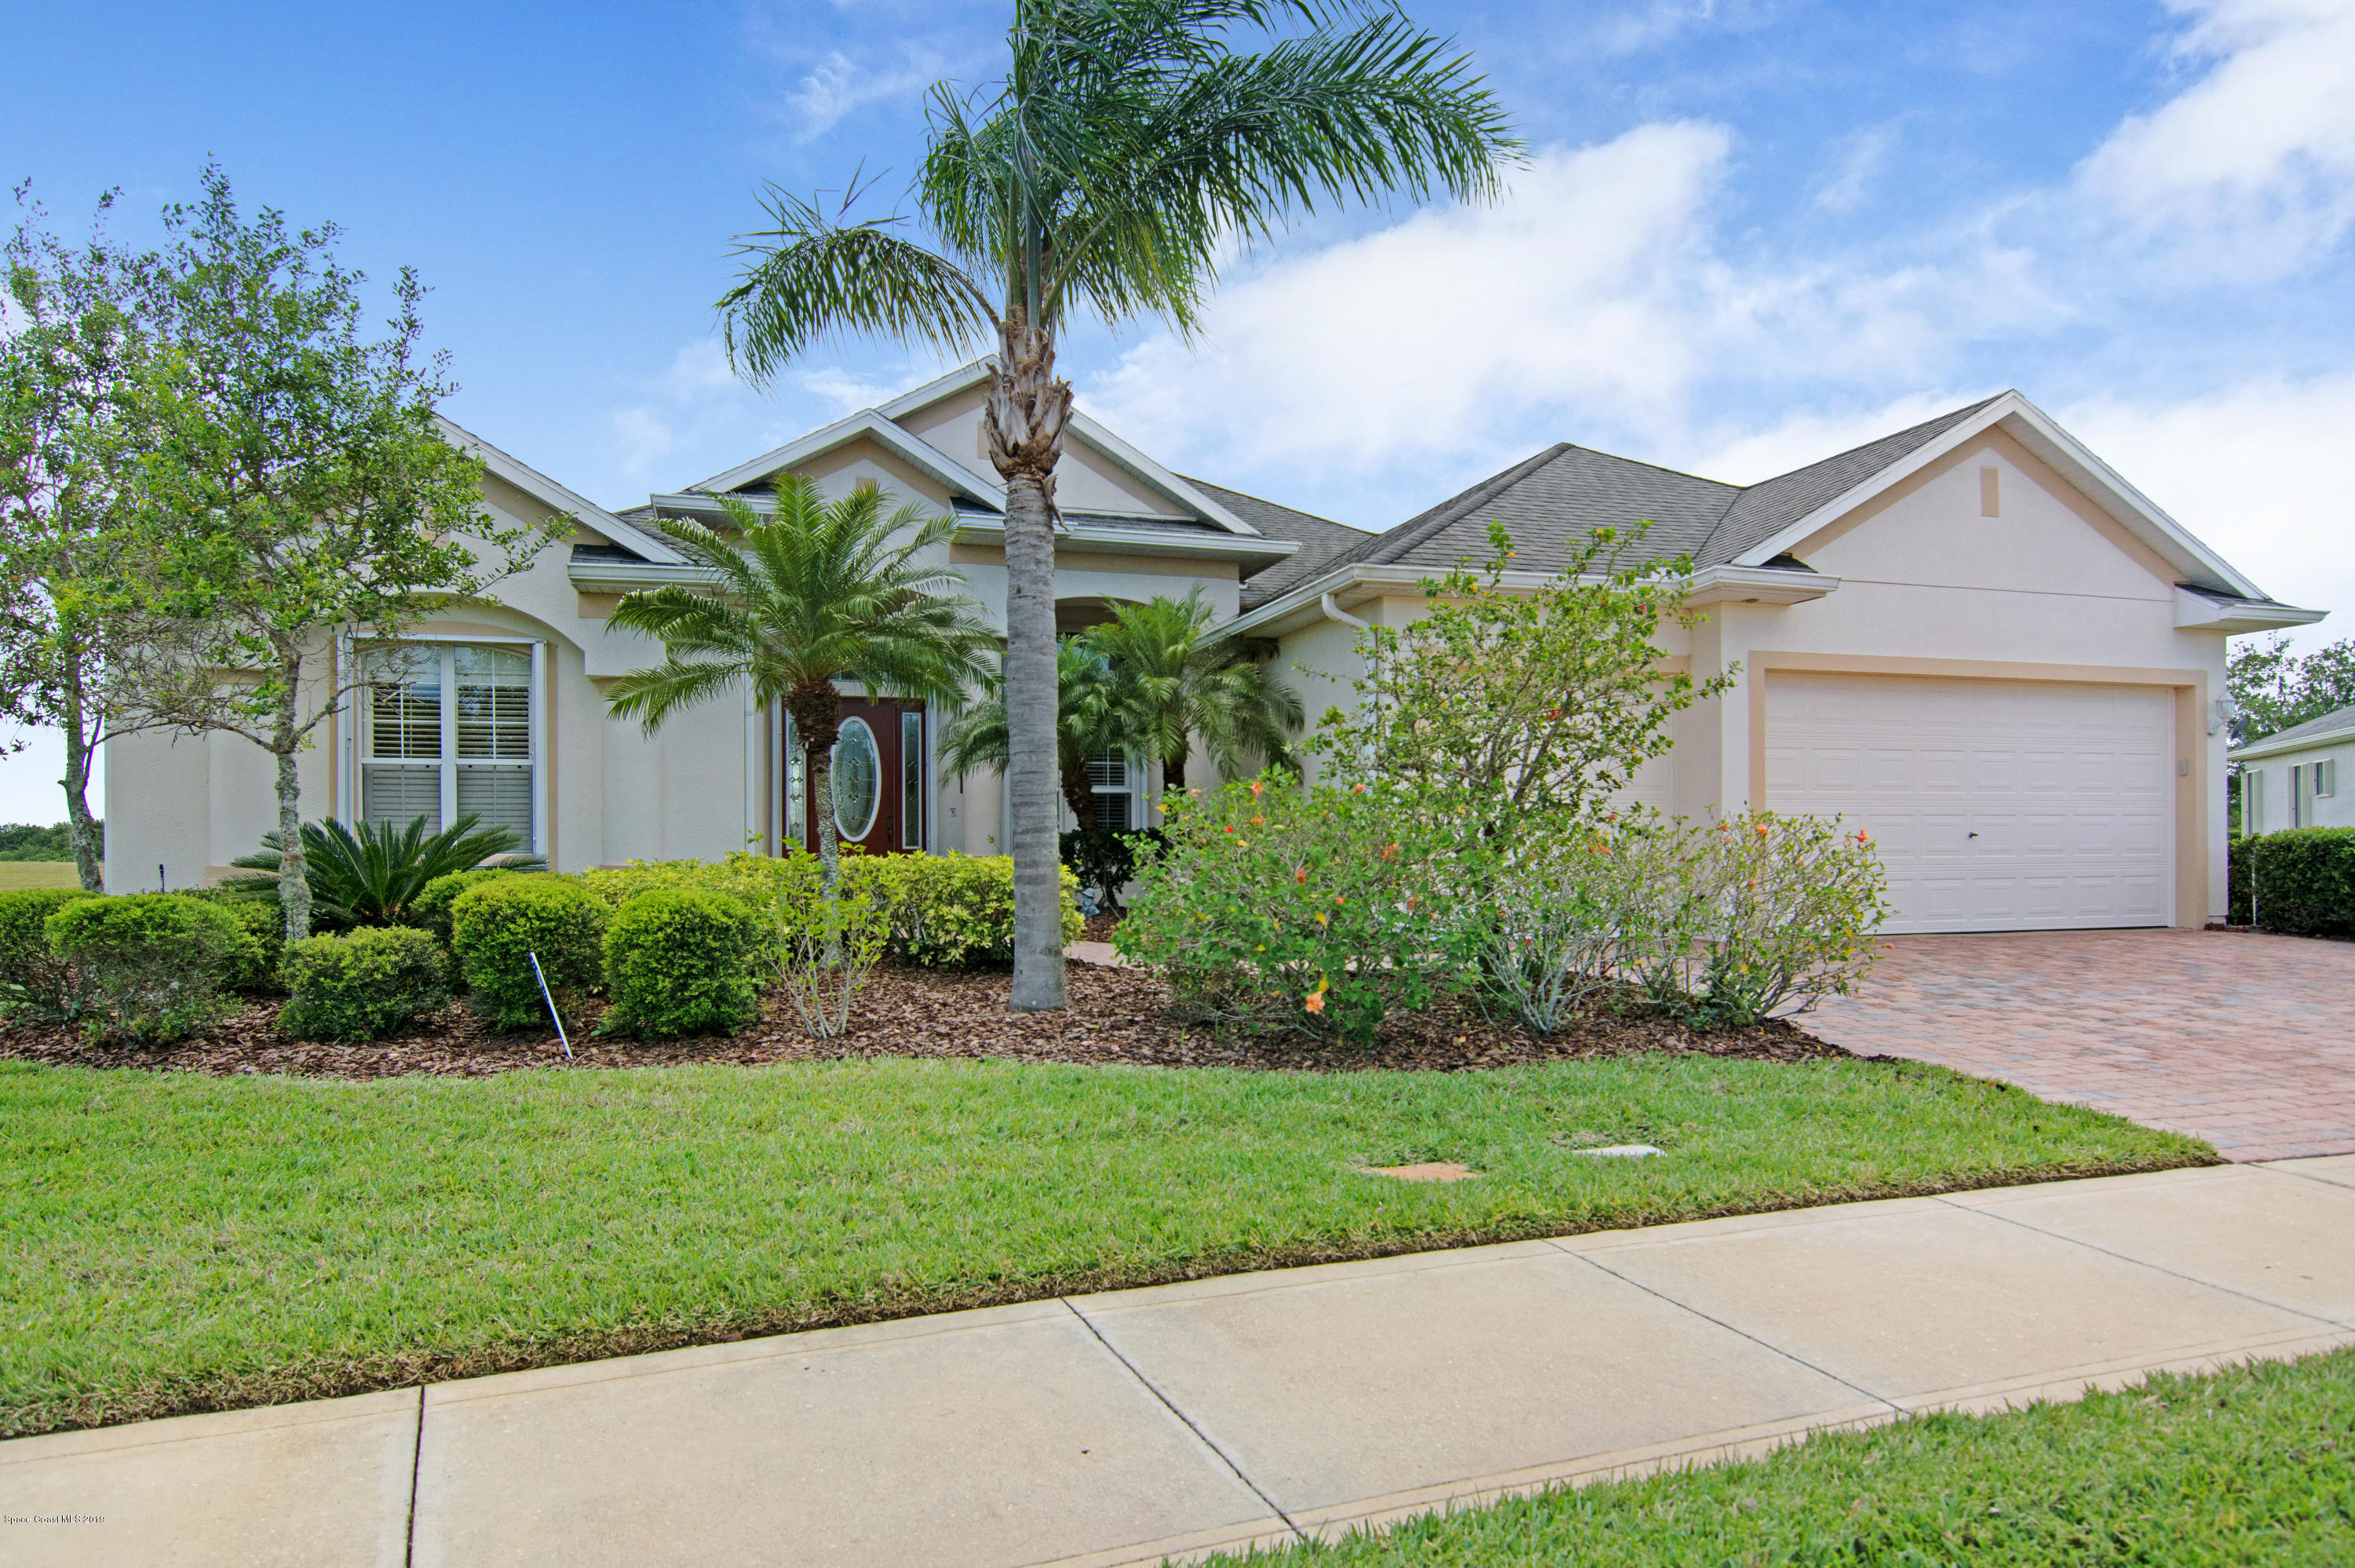 Single Family Home for Sale at 3553 Carambola Melbourne, Florida 32940 United States